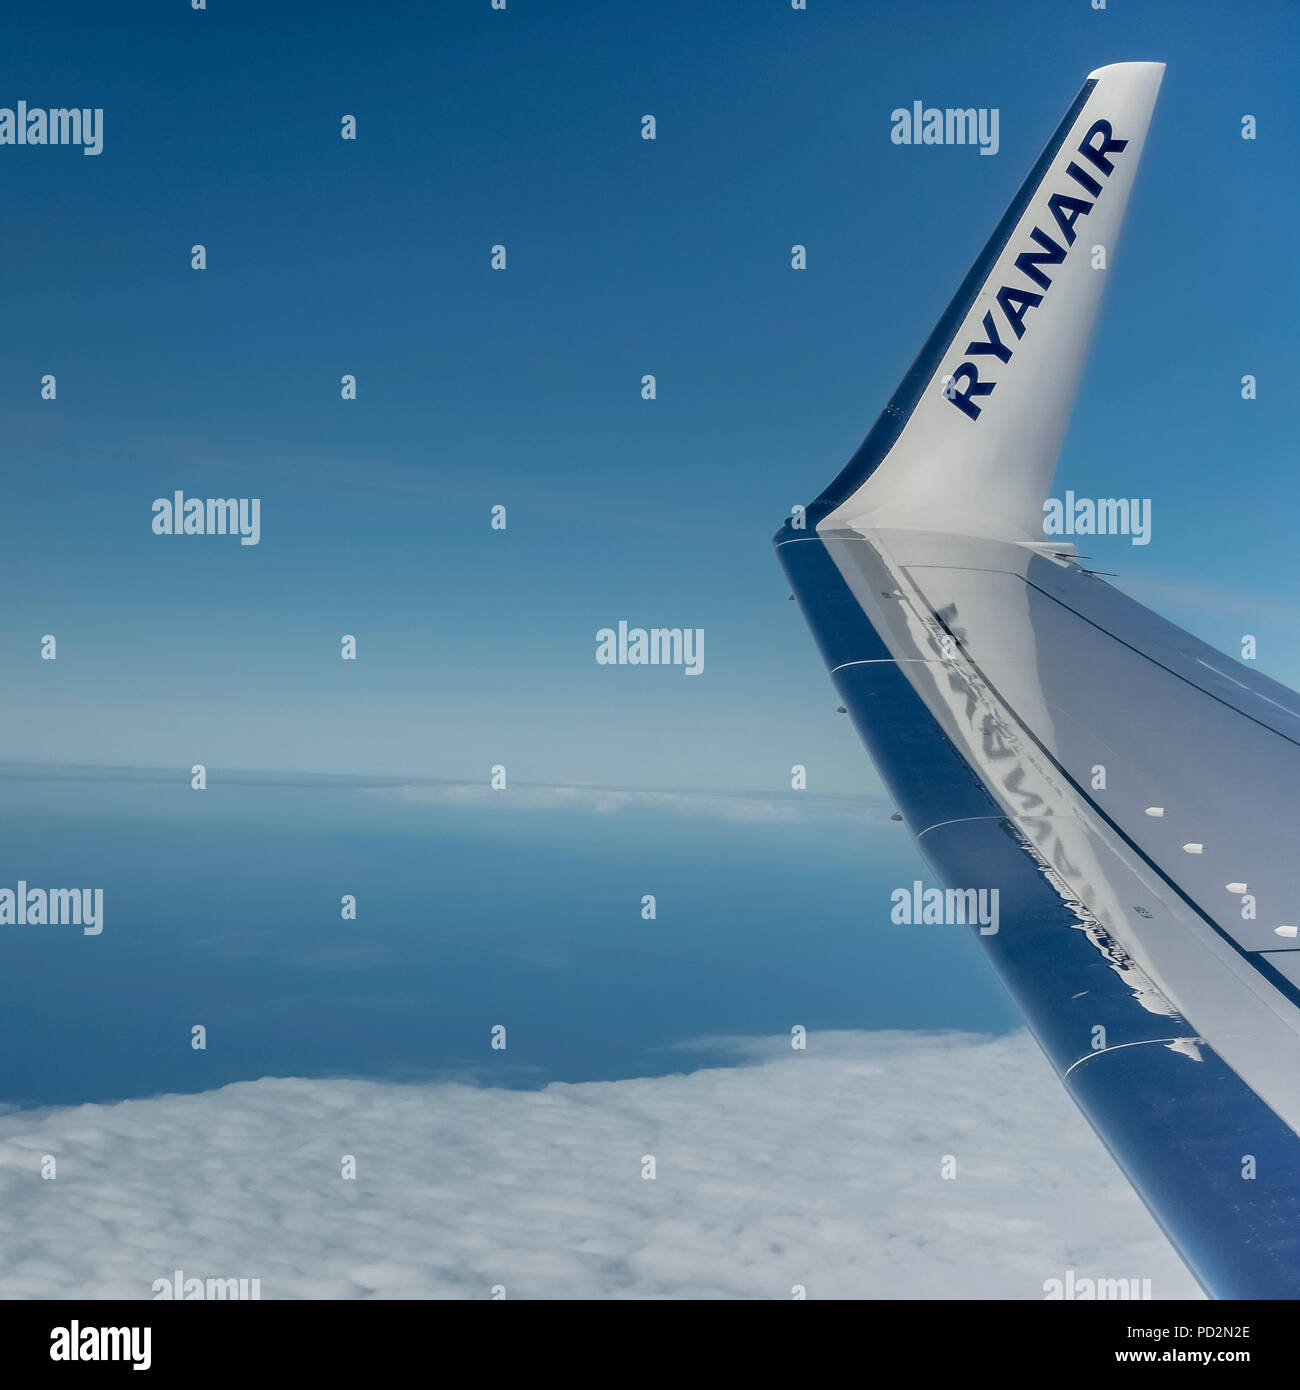 Ryanair, budget airline, Boeing 737 airplane flying in the blue sky. Wing with logo on winglet. Copy space. - Stock Image